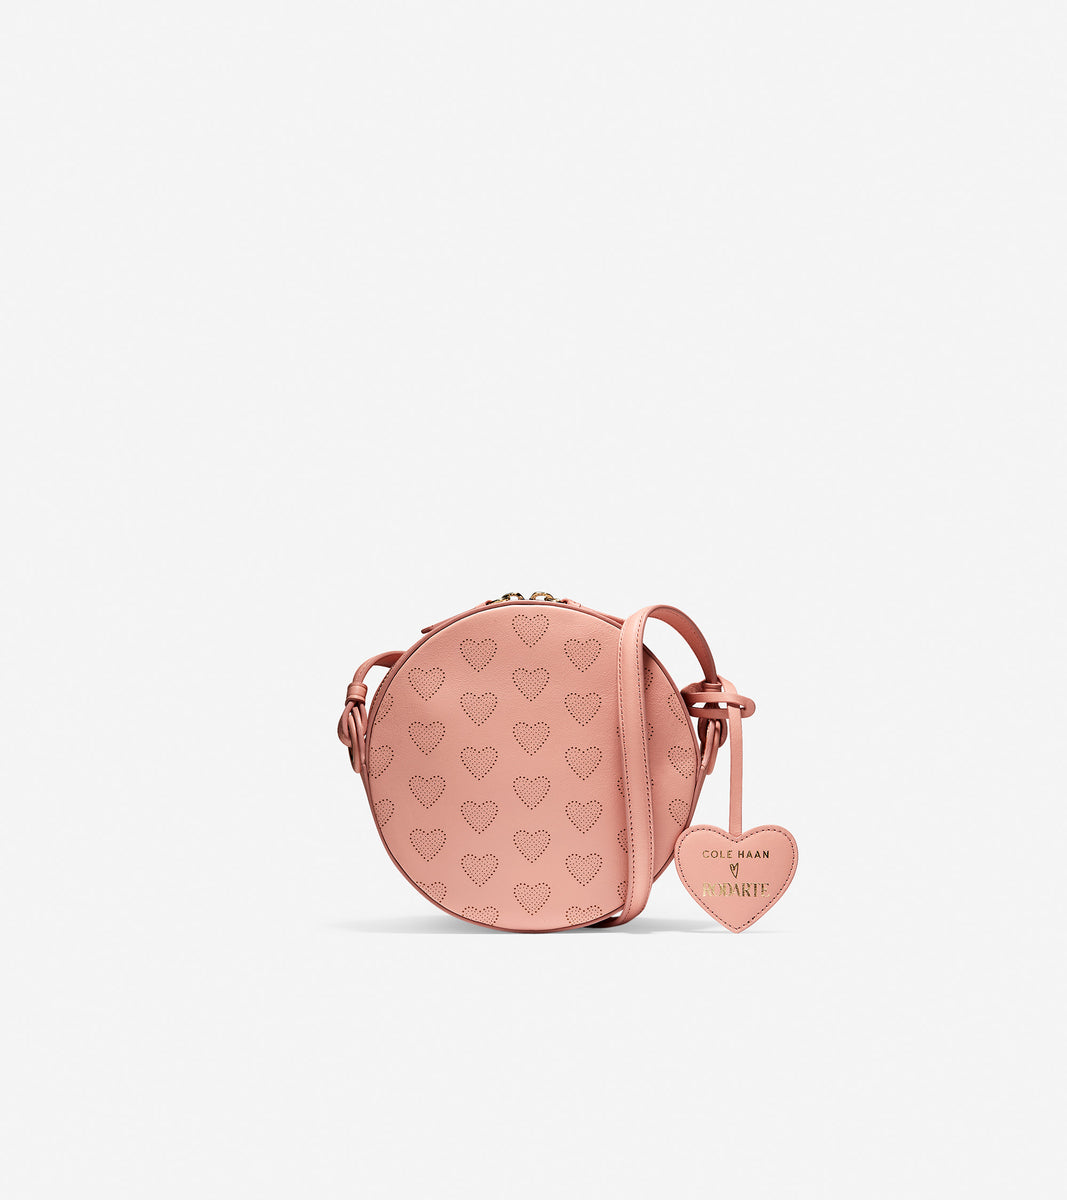 Cole Haan x Rodarte Hearts Circle Bag